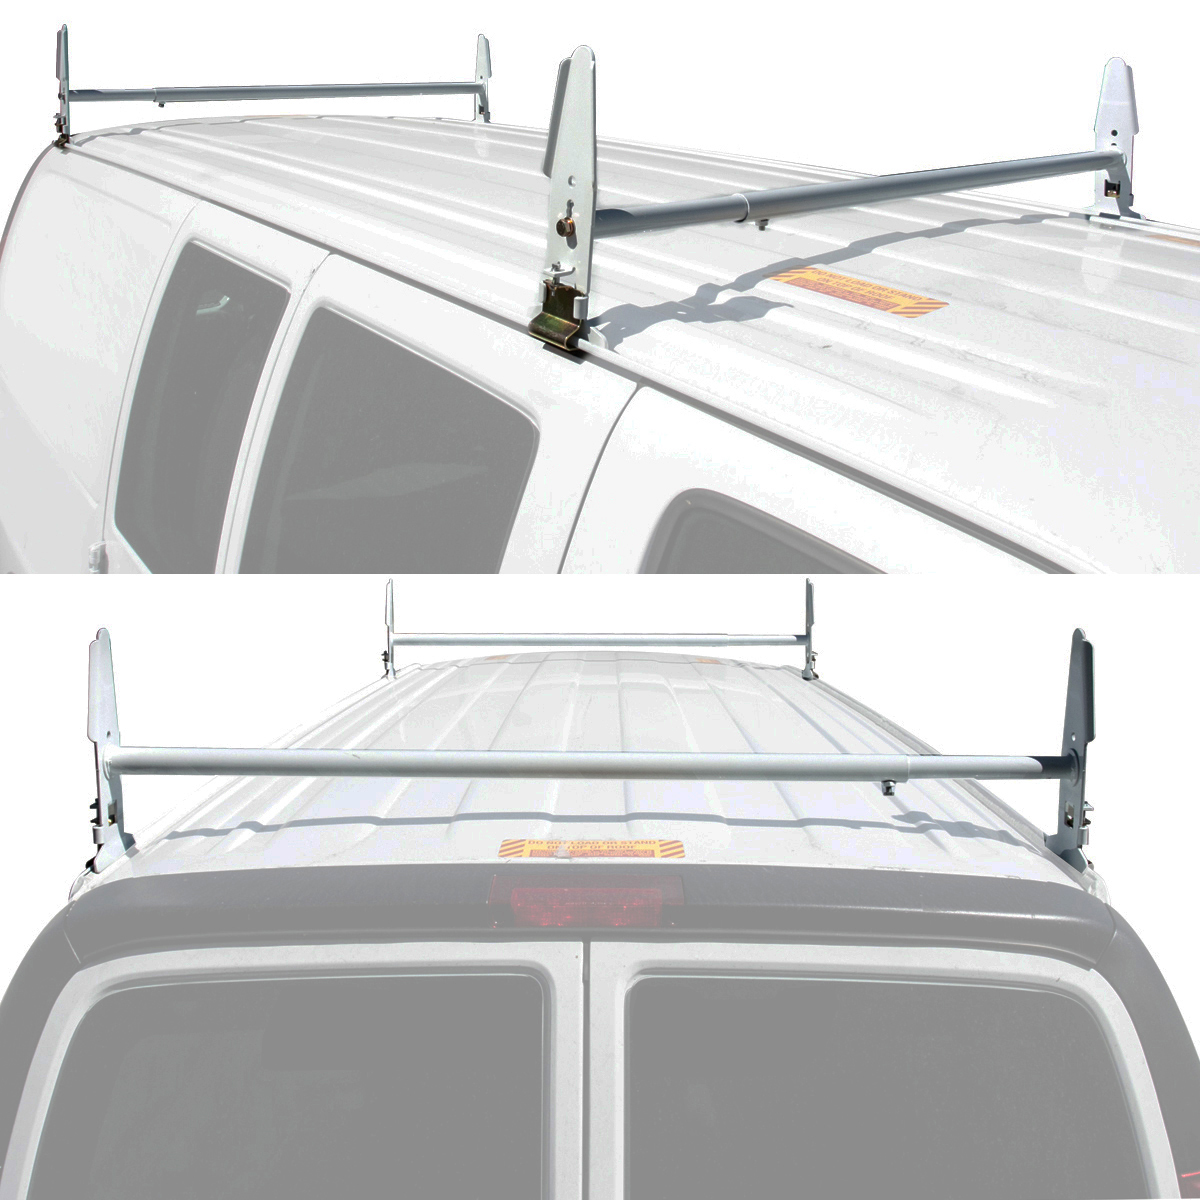 Van Ladder Rack Roof 500 Lb 2 Bars Contractor Chevy Dodge Ford Gmc Gm Express Ebay